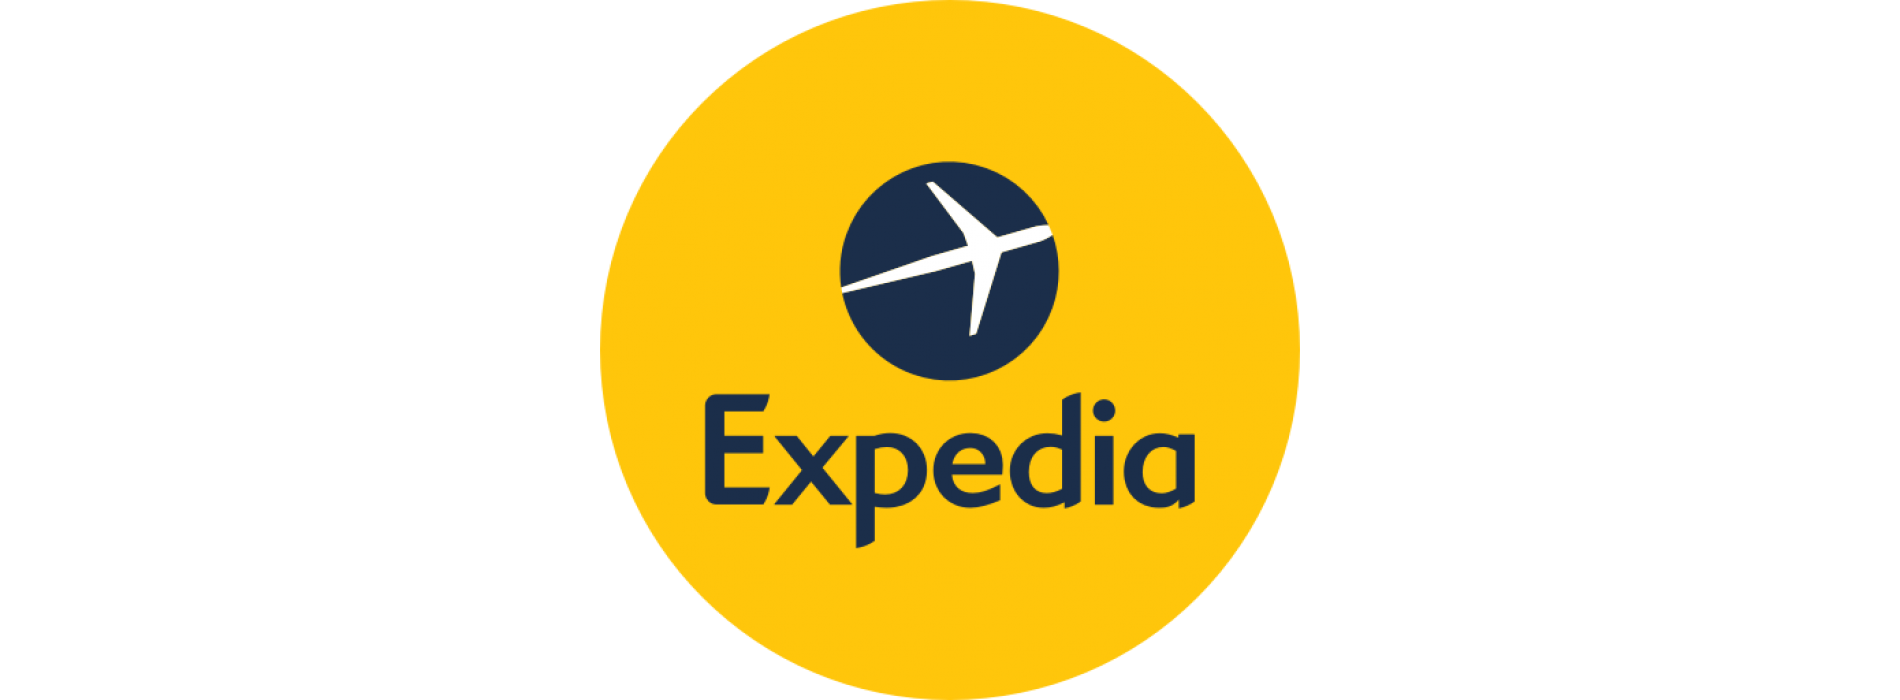 Expedia launches a new product 'Add-On Advantage'